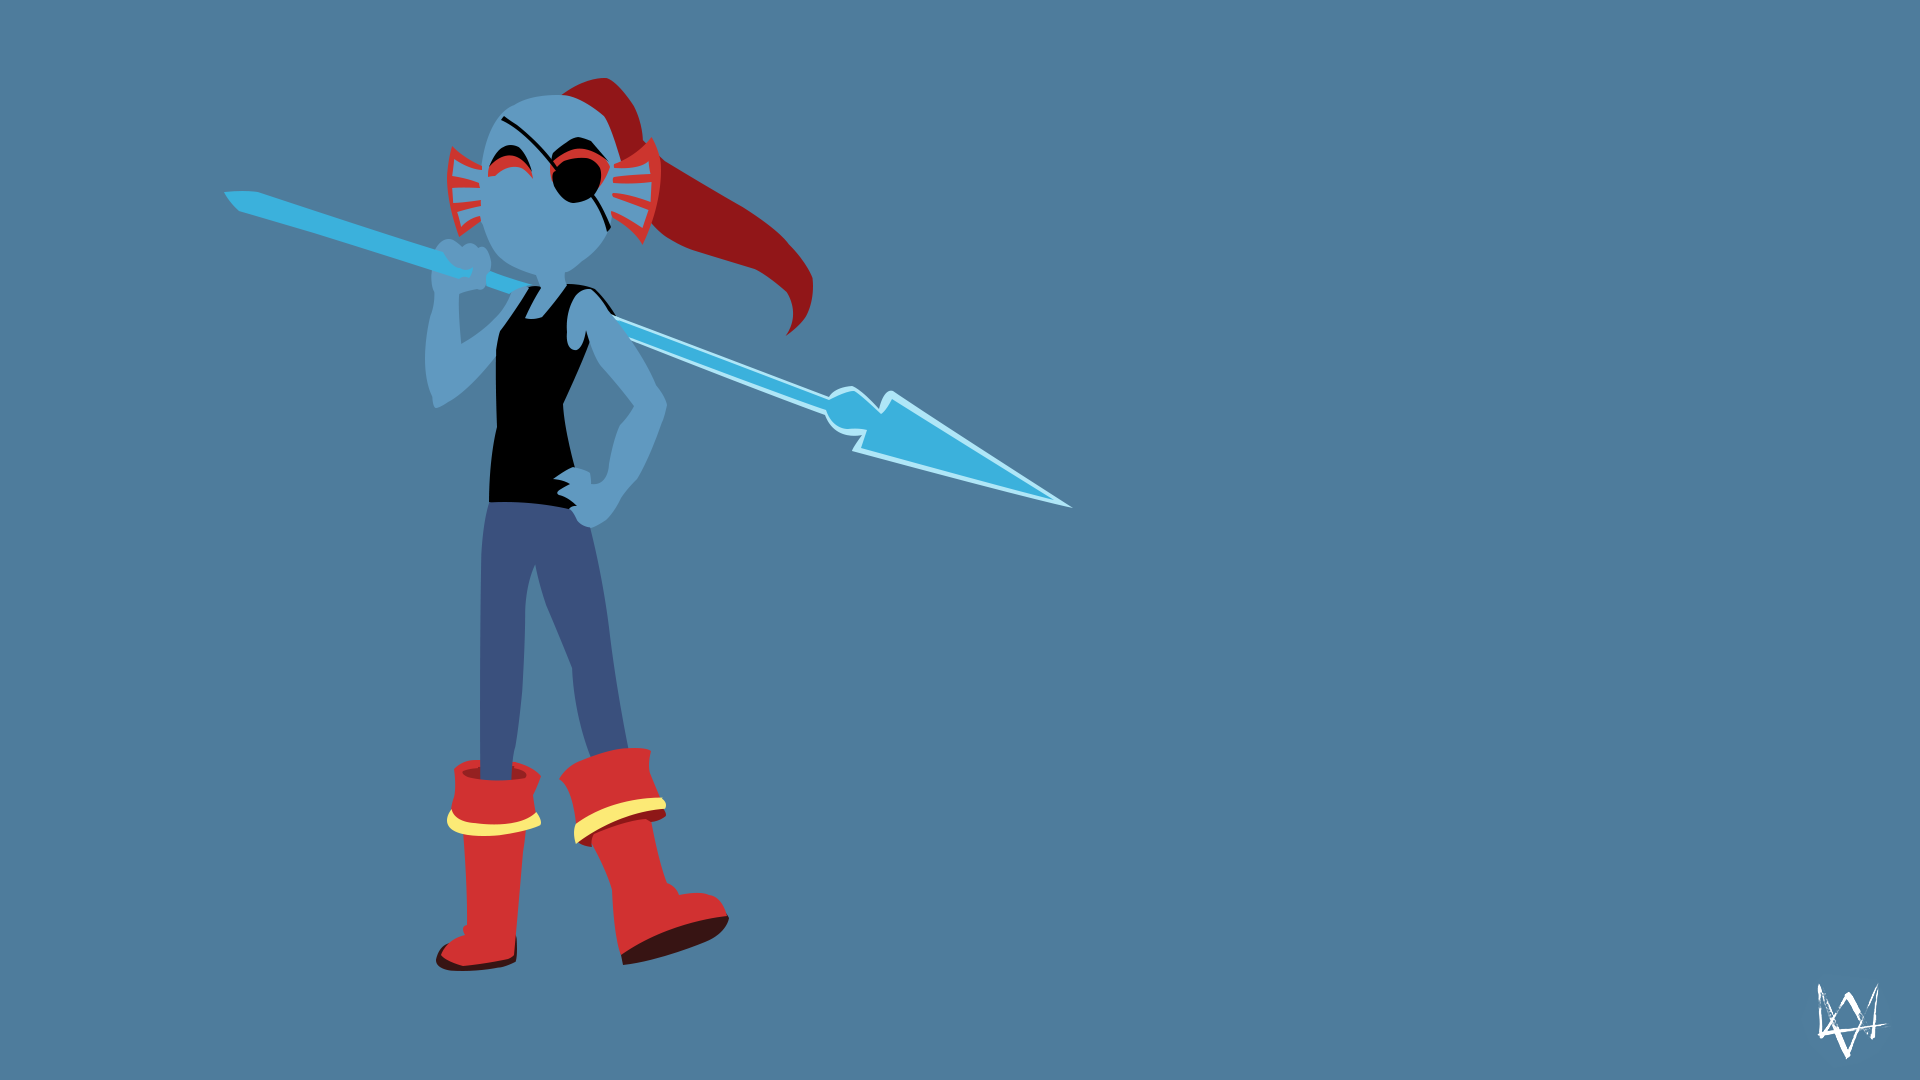 Undyne Undertale Minimalist Game Wallpaper by Lucifer012 on 1920x1080